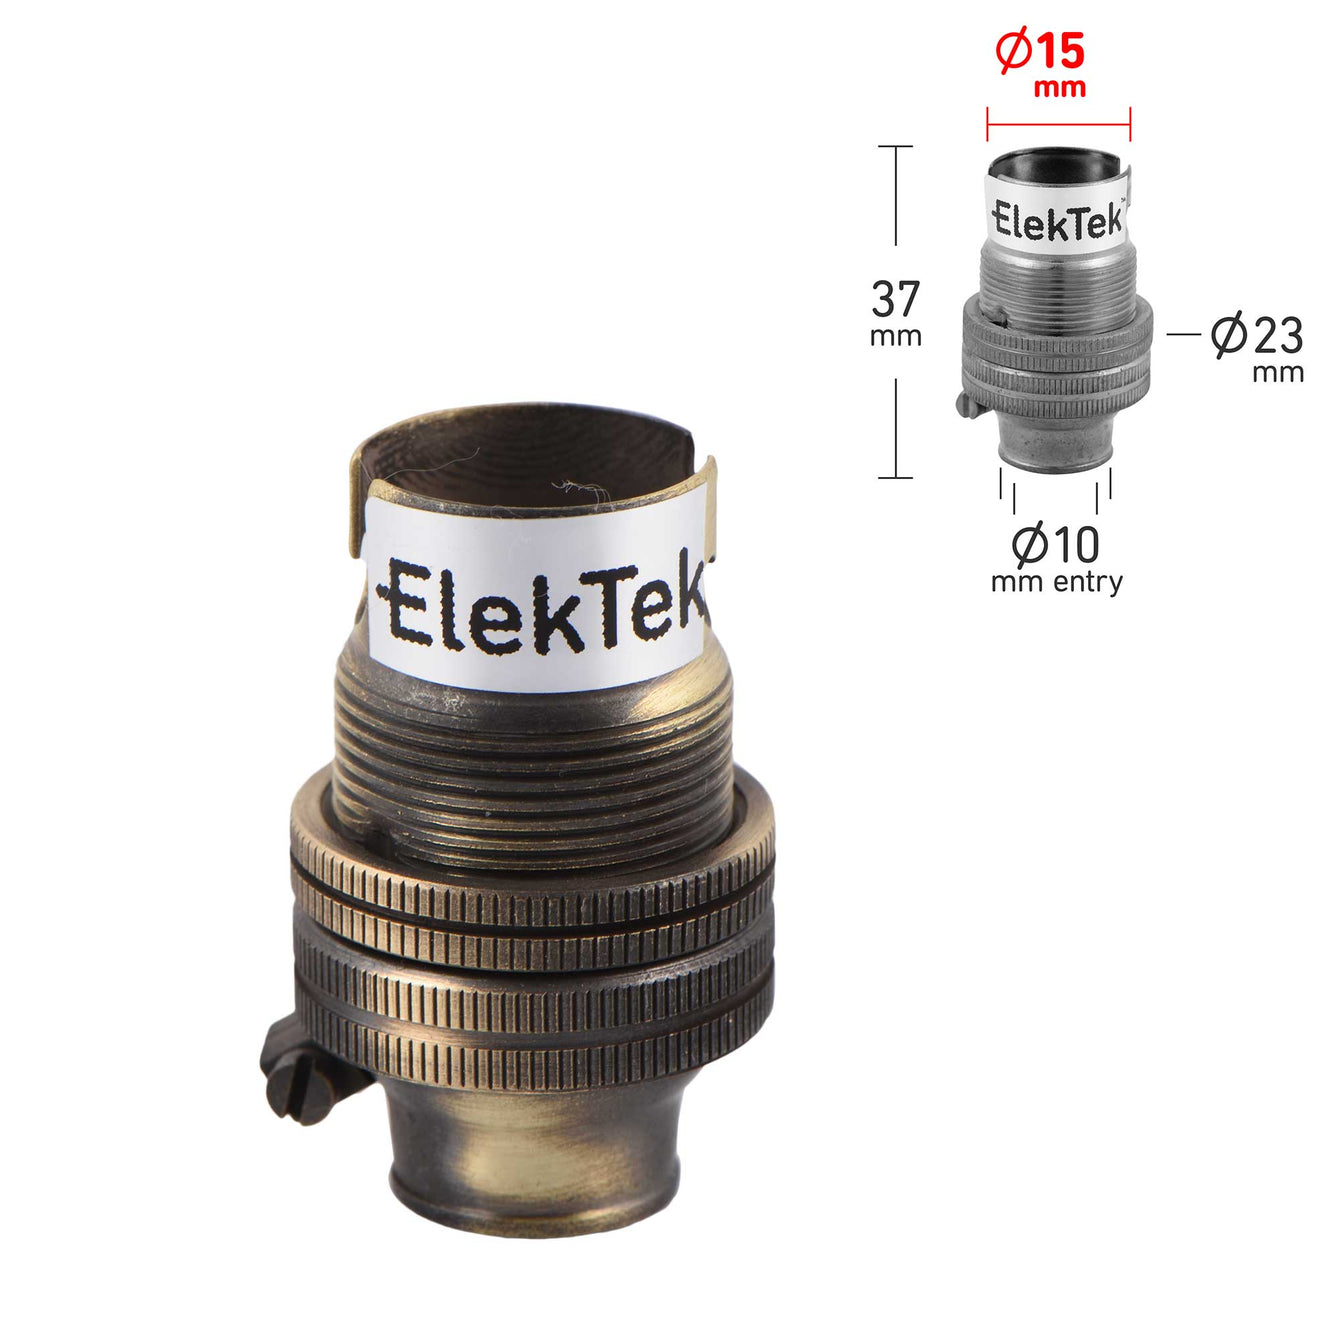 ElekTek Lamp Holder 10mm or Half Inch Entry Small Bayonet Cap SBC B15 With Shade Ring Solid Brass - Buy It Better Chrome / 10mm